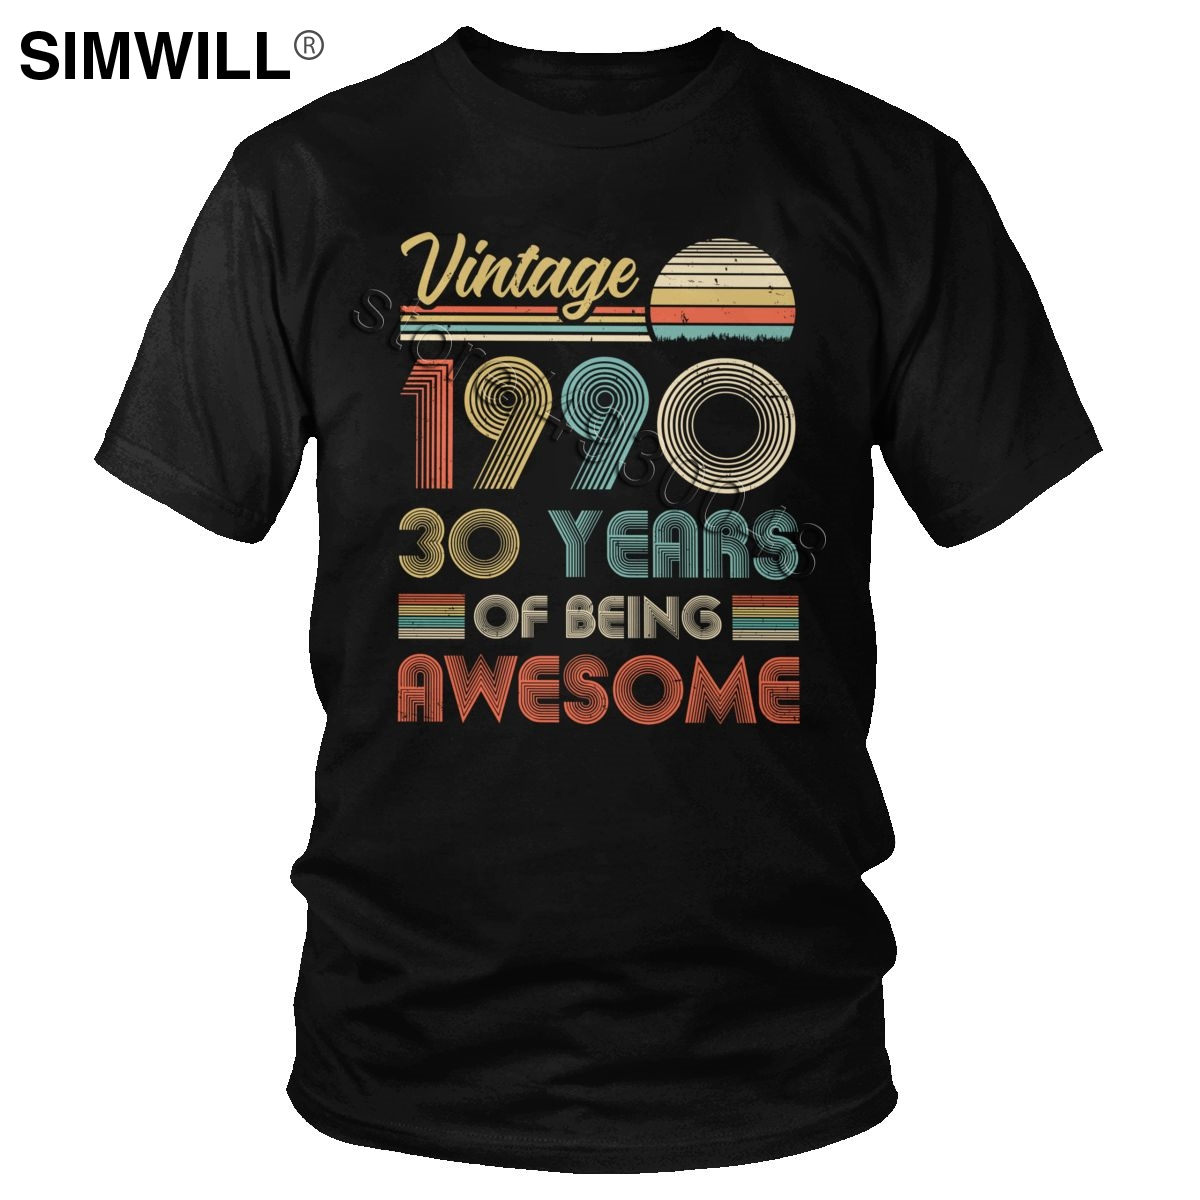 Vintage 1990 30th Birthday T Shirt 30 Years Of Being Awesome T-Shirt Short Sleeve Born In 90s Anniversary Present Cotton Tee Top